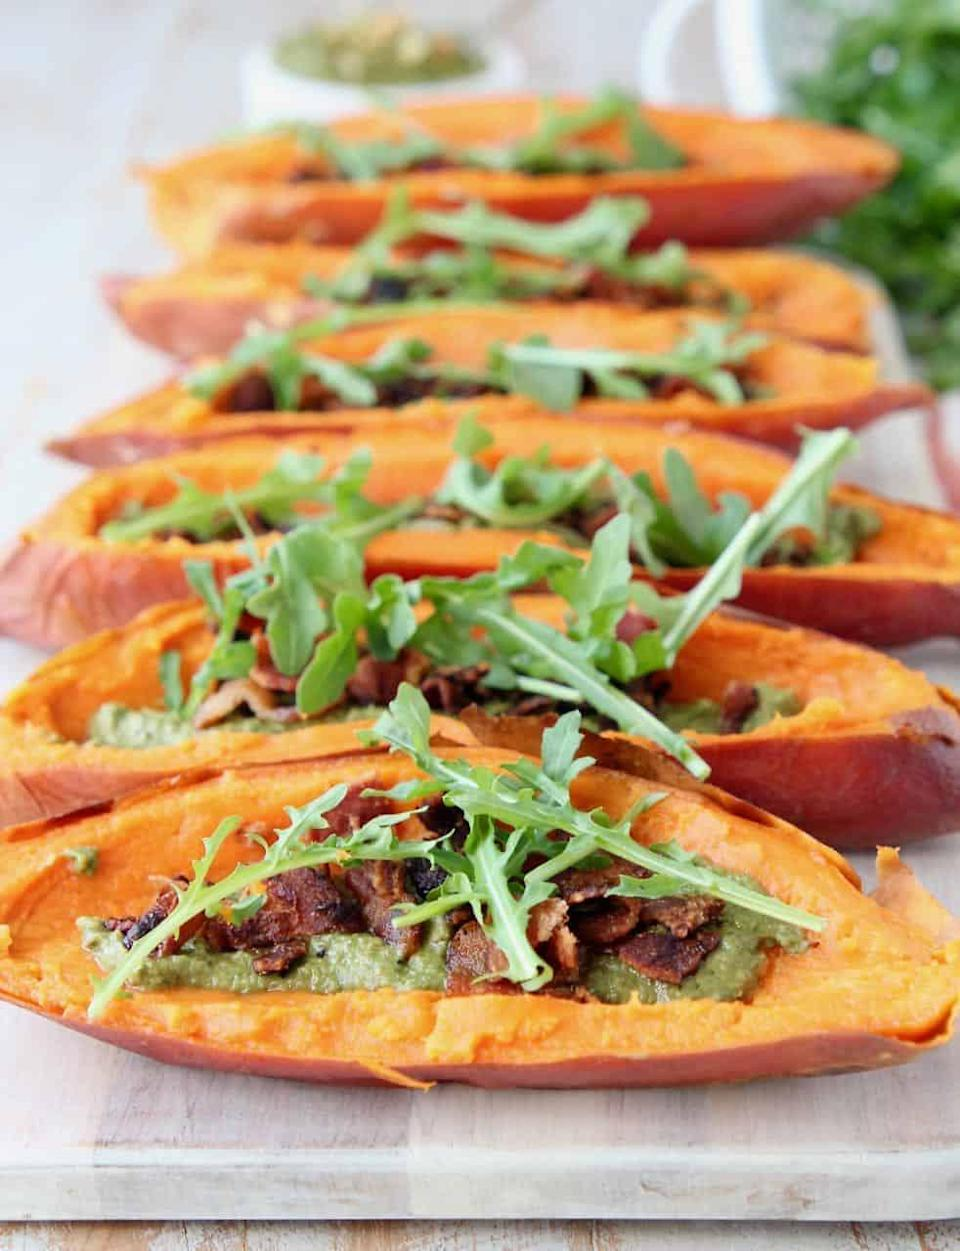 "<p>Usually sweet potatoes are covered with marshmallows on Thanksgiving, but these sweet potato skins are a healthy alternative to the sugary sweet dish. The skins are filled with sage pesto, bacon, and arugula for a tasty side dish. The original recipe makes eight potato skins, so cut the recipe in half or fourths depending on how many potato skins you want to eat. </p> <p><strong>Get the recipe:</strong> <a href=""http://whitneybond.com/paleo-sweet-potato-skins-with-sage-pesto-and-bacon/#wprm-recipe-container-32238"" class=""link rapid-noclick-resp"" rel=""nofollow noopener"" target=""_blank"" data-ylk=""slk:sweet potato skins with sage pesto and bacon"">sweet potato skins with sage pesto and bacon</a></p>"